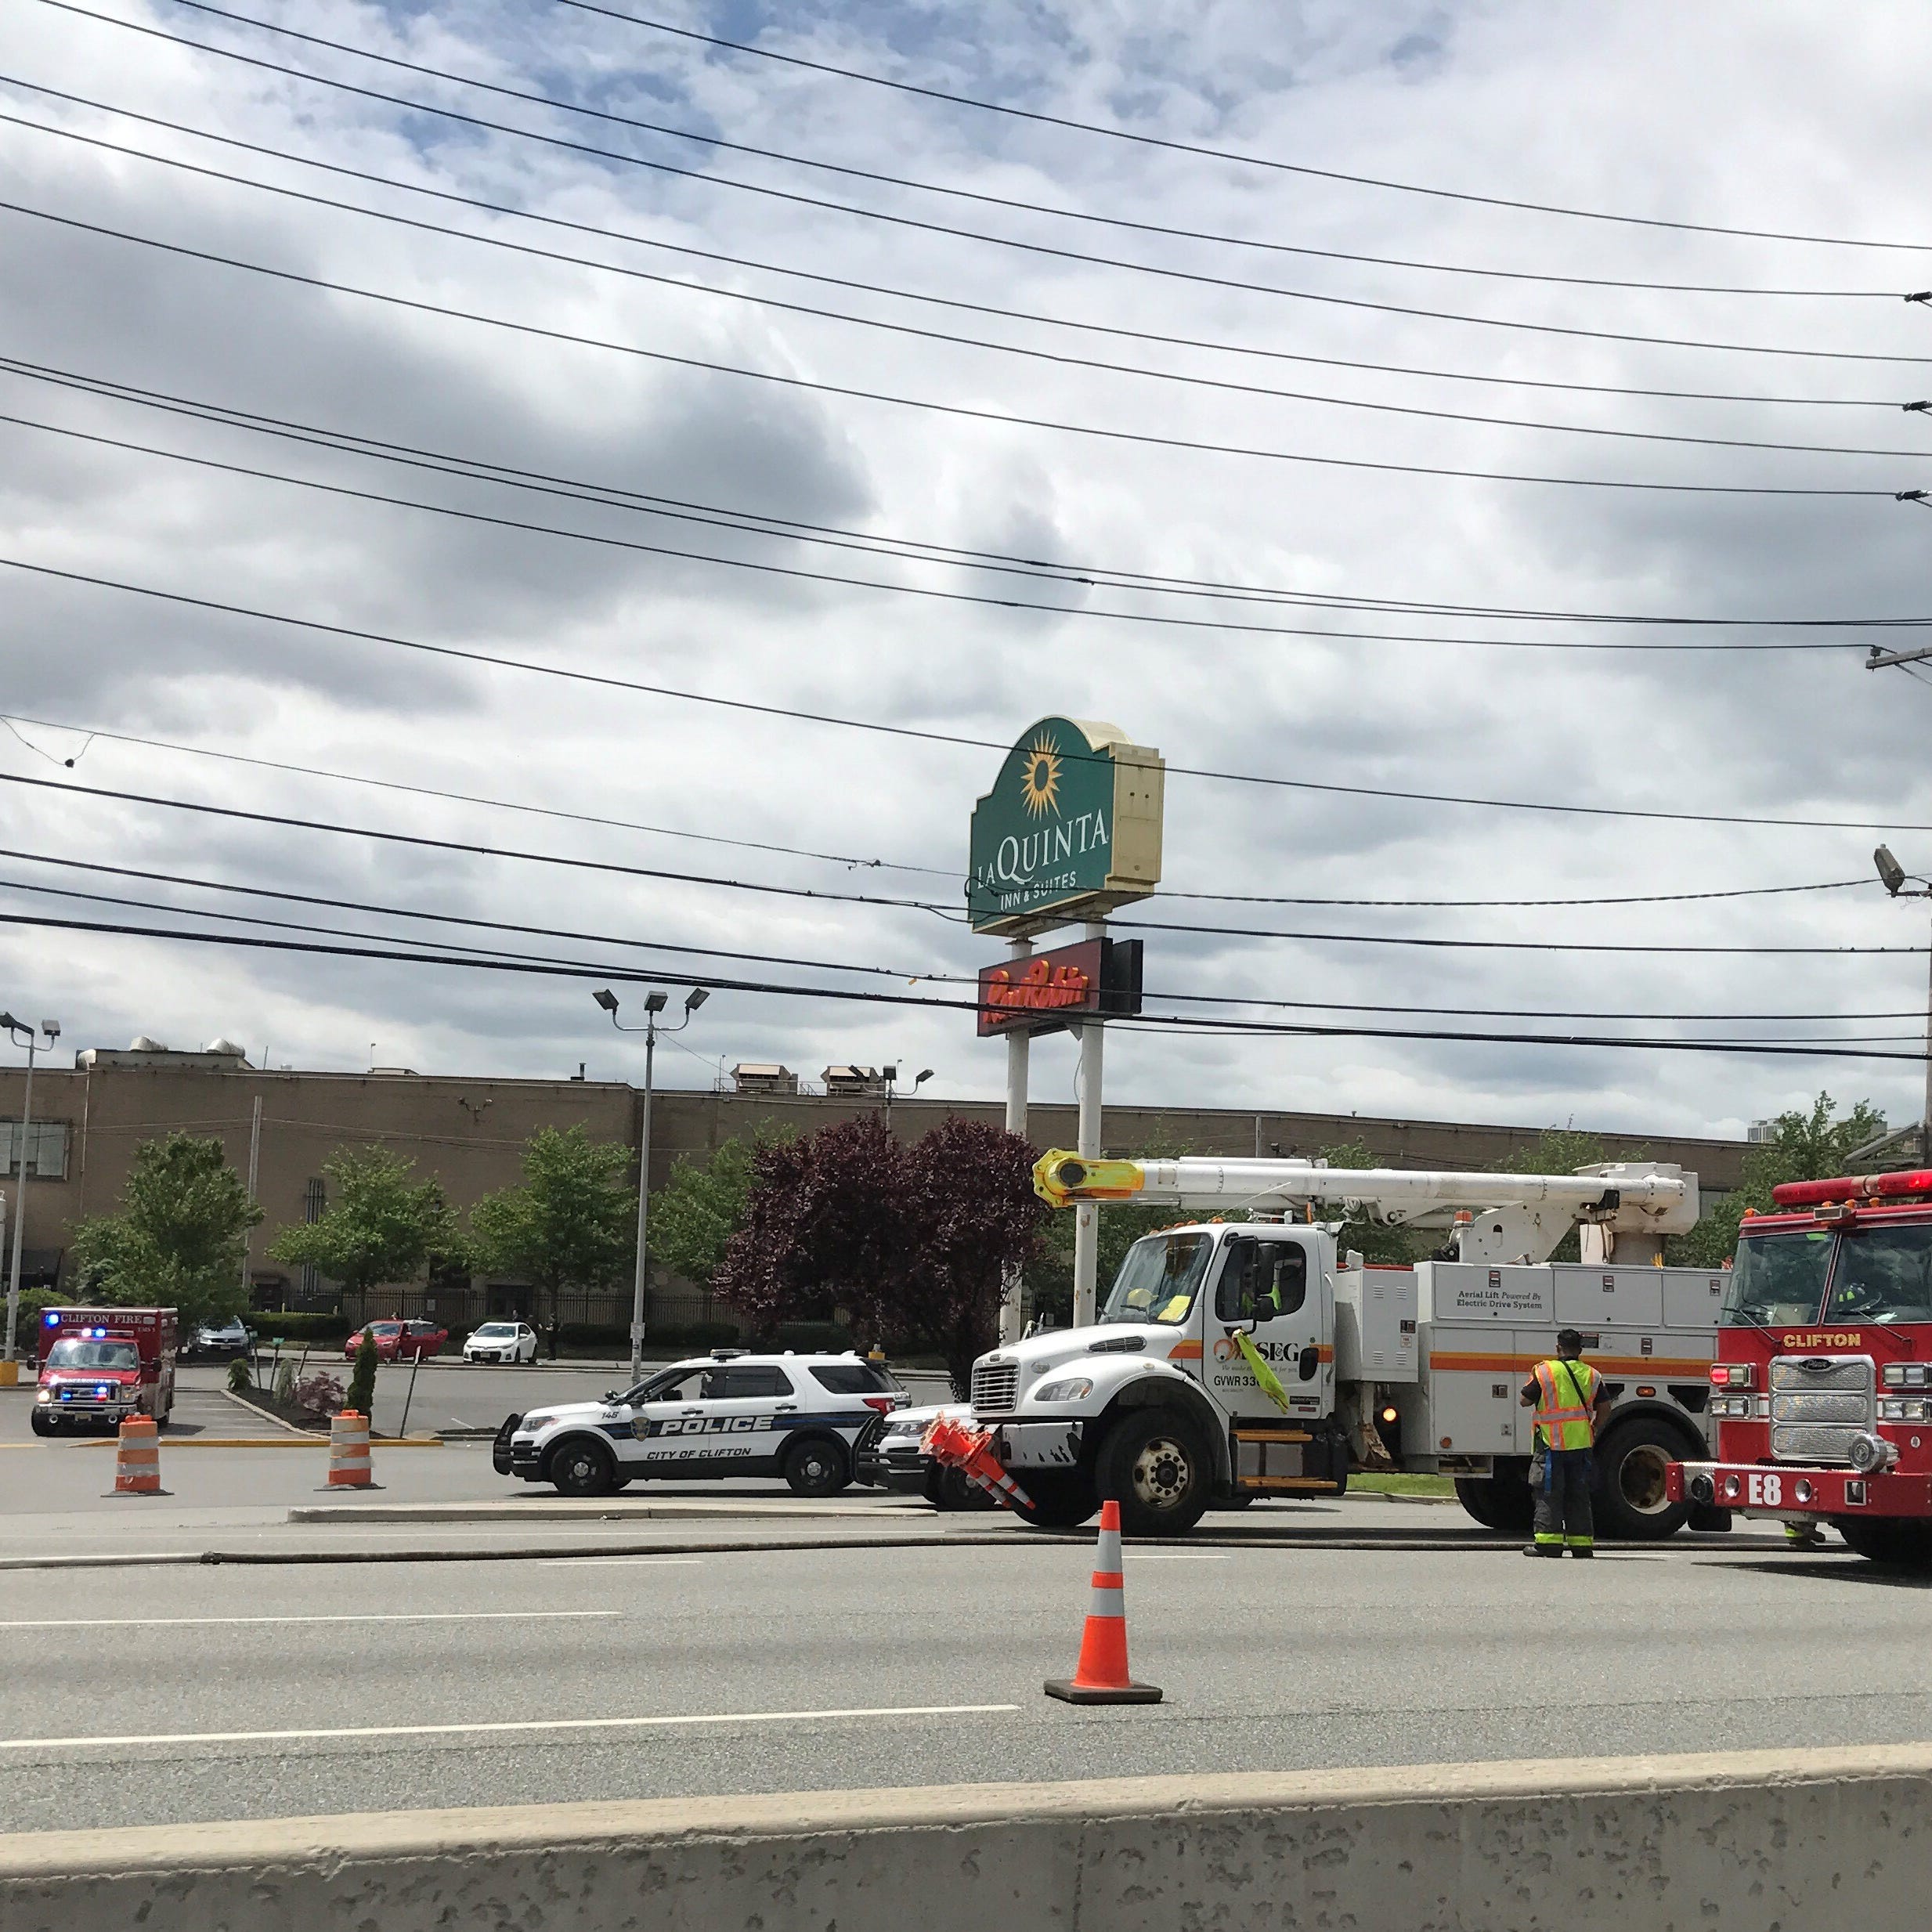 Route 3 east clear in Clifton after downed wires cause delays